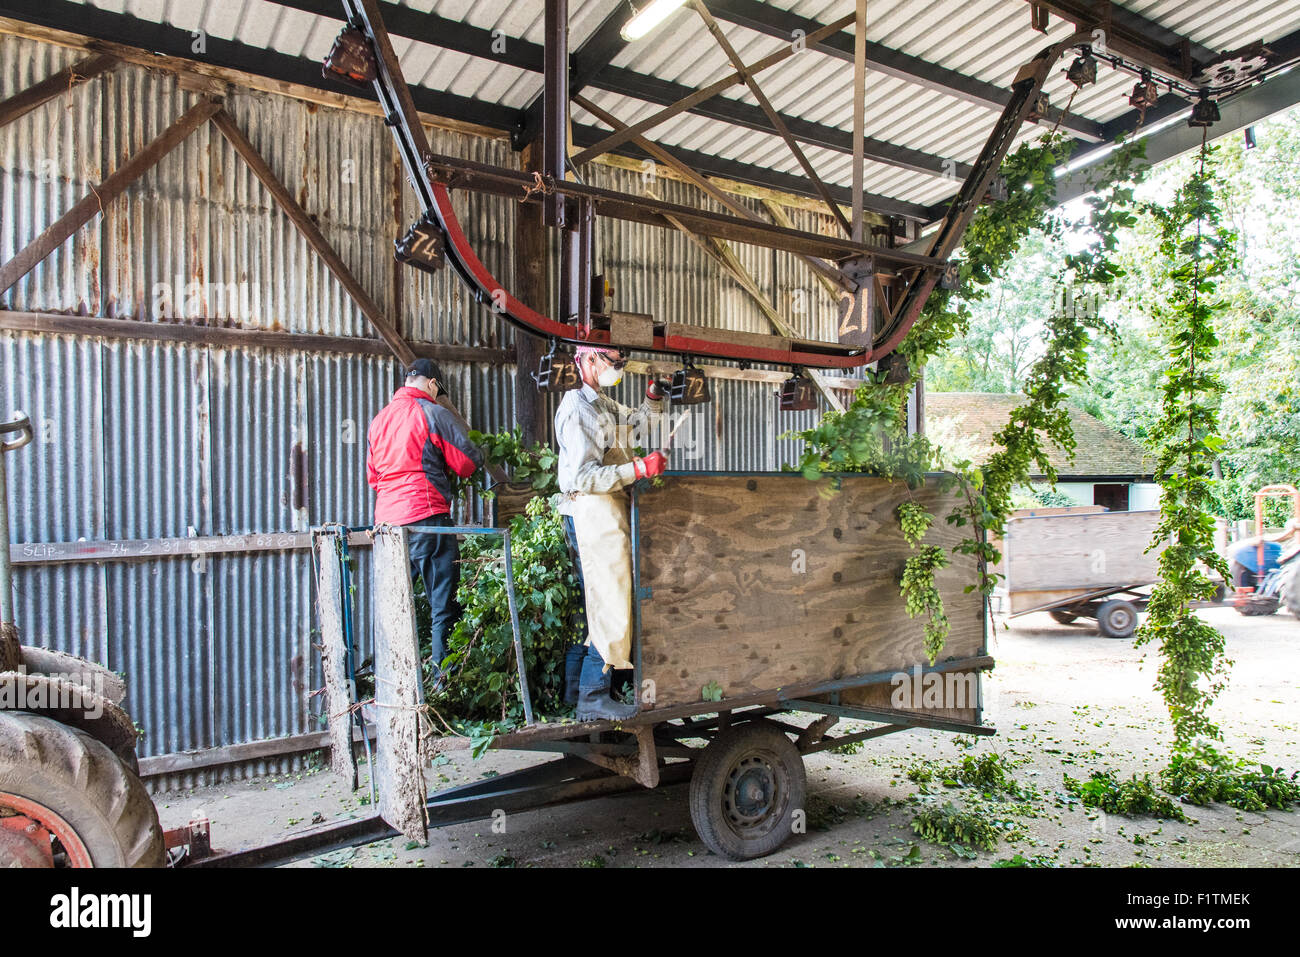 Boughton, near Faversham, Kent 7 September 2015. Hop Harvest. Workers clip the bines for transport to the machine - Stock Image